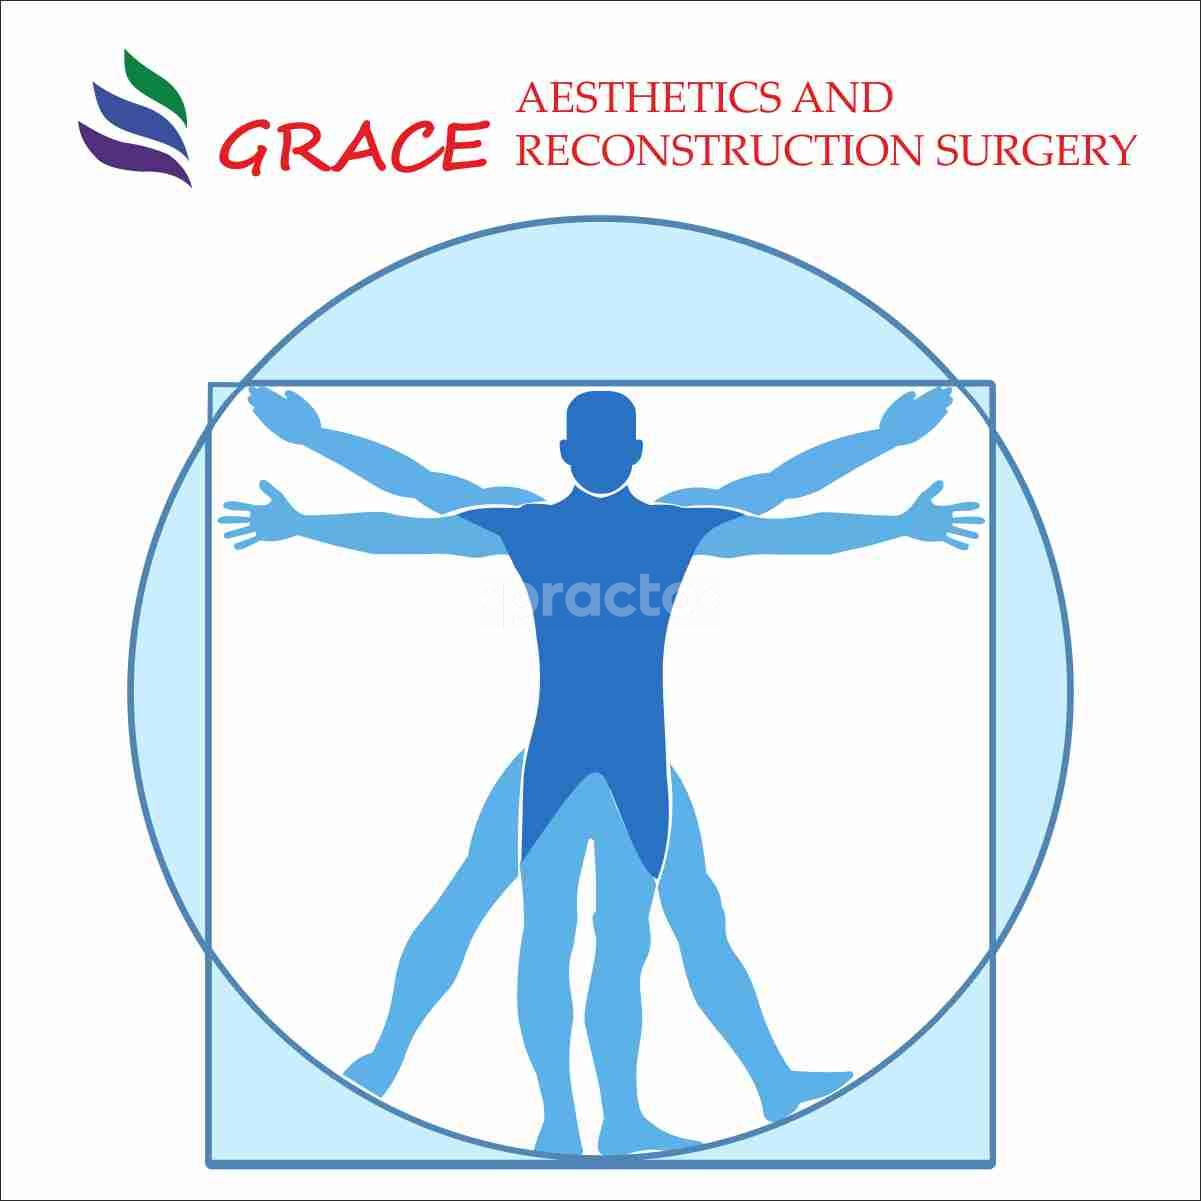 Grace Aesthetics And Reconstruction Surgery